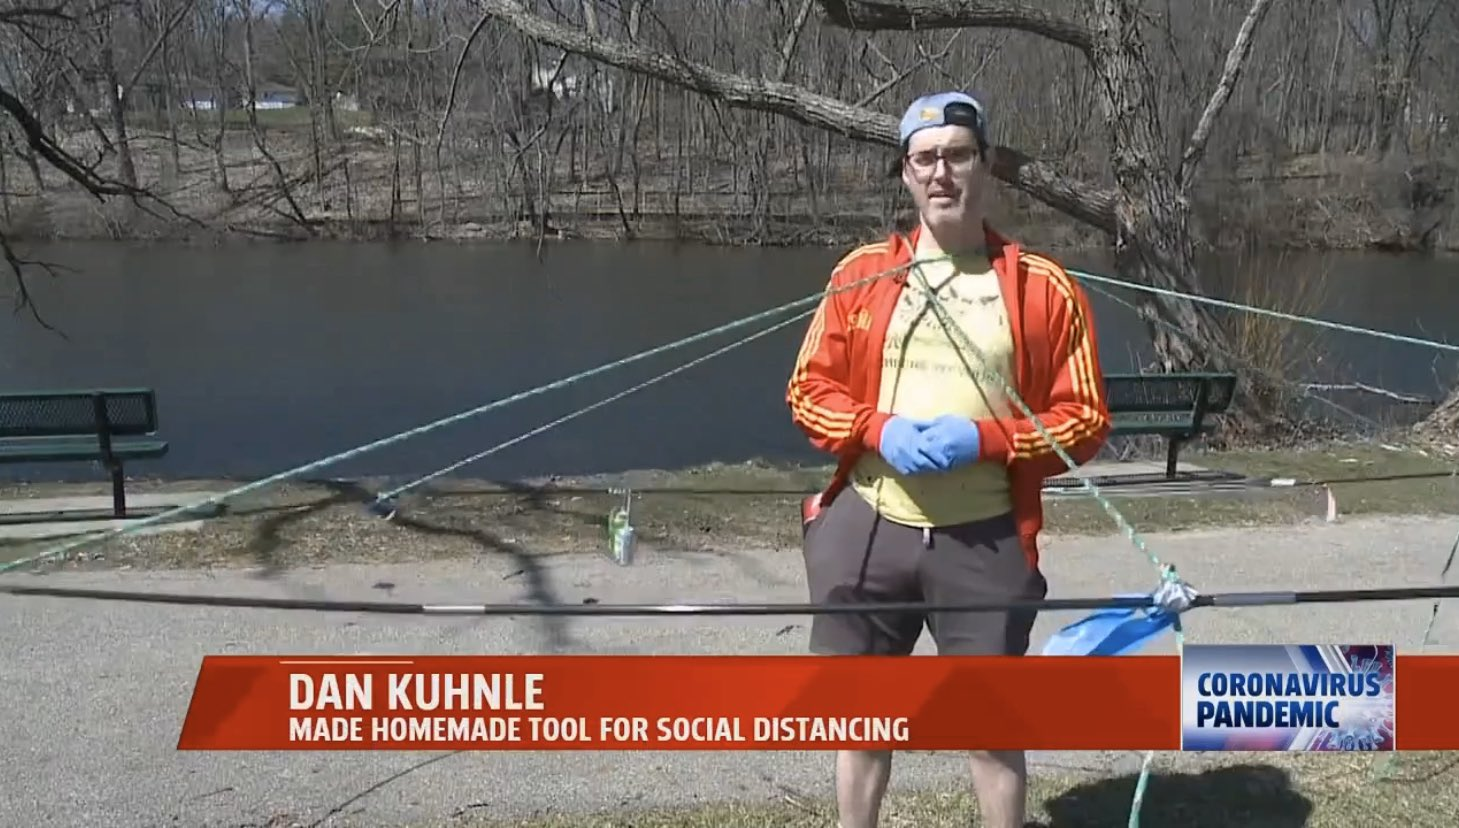 Dan Kuhnle: Made Homemade Tool For Social Distancing